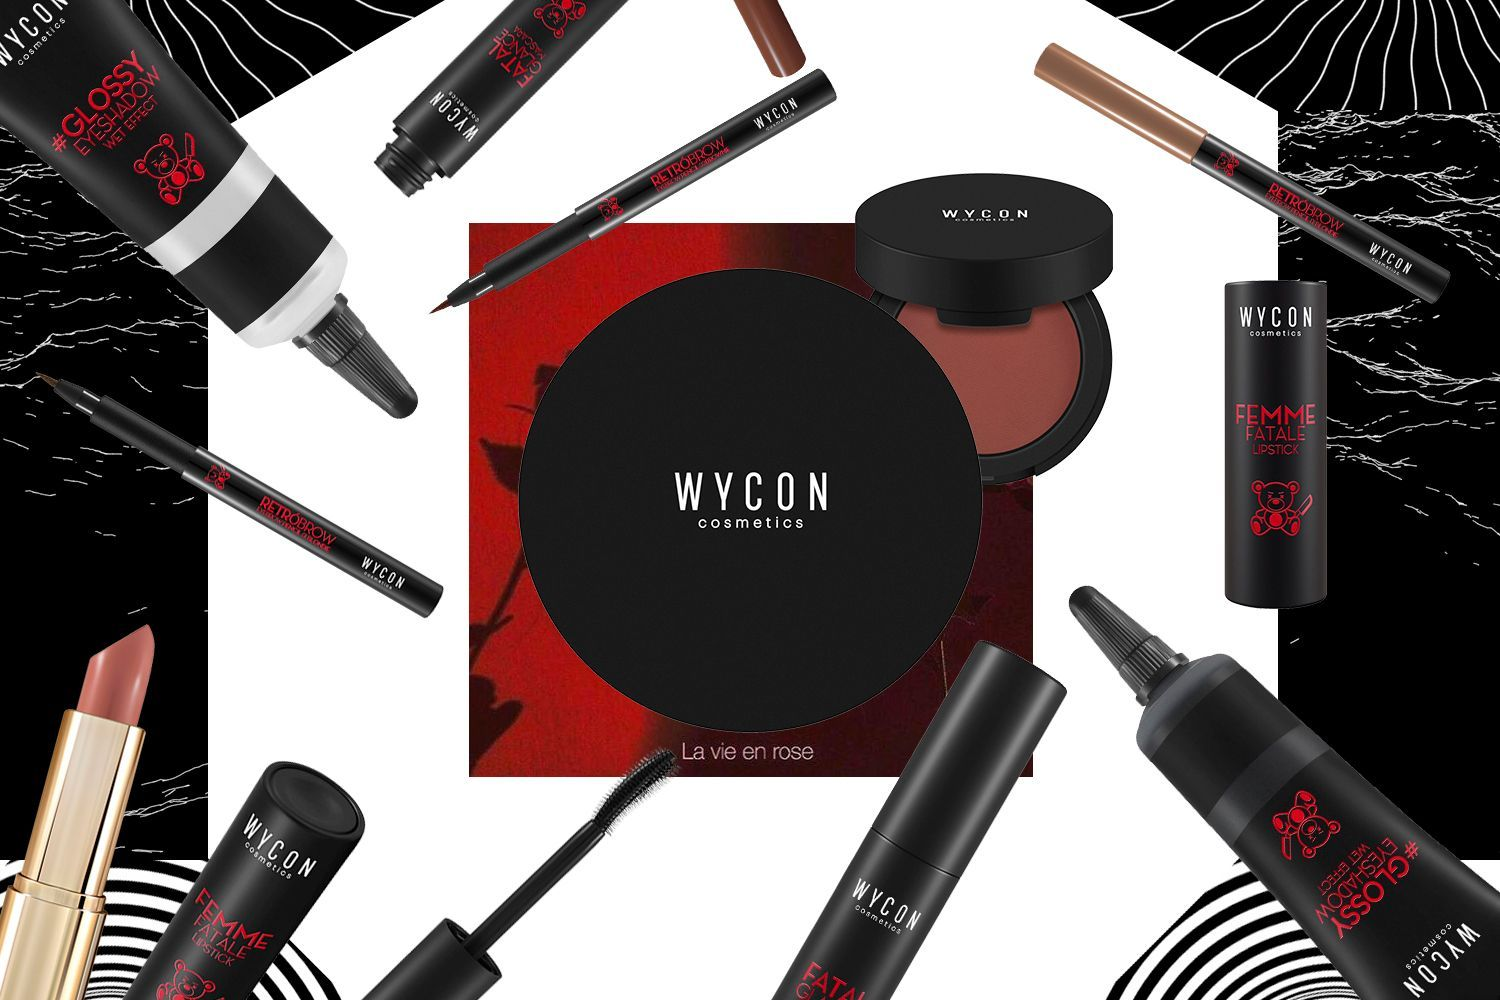 GET THE LOOK OF KAIA GERBER Ottieni l'effetto Kaia Gerber con WYCON cosmetics in pochi e semplici step